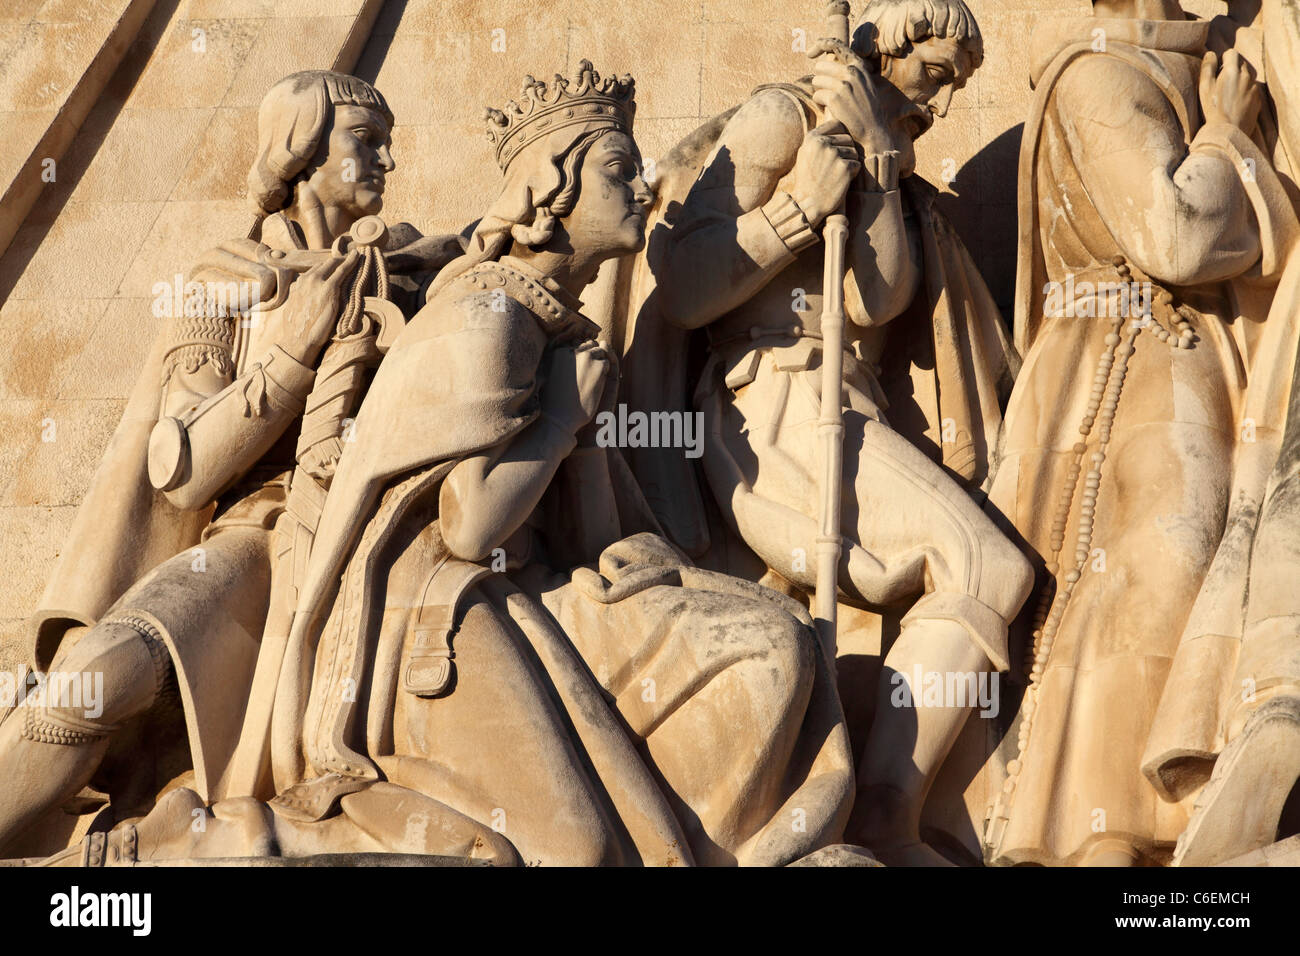 Detail from the Monument to the Discoveries (Padrao dos Descobrimentos) in Belem, Lisbon, Portugal. - Stock Image